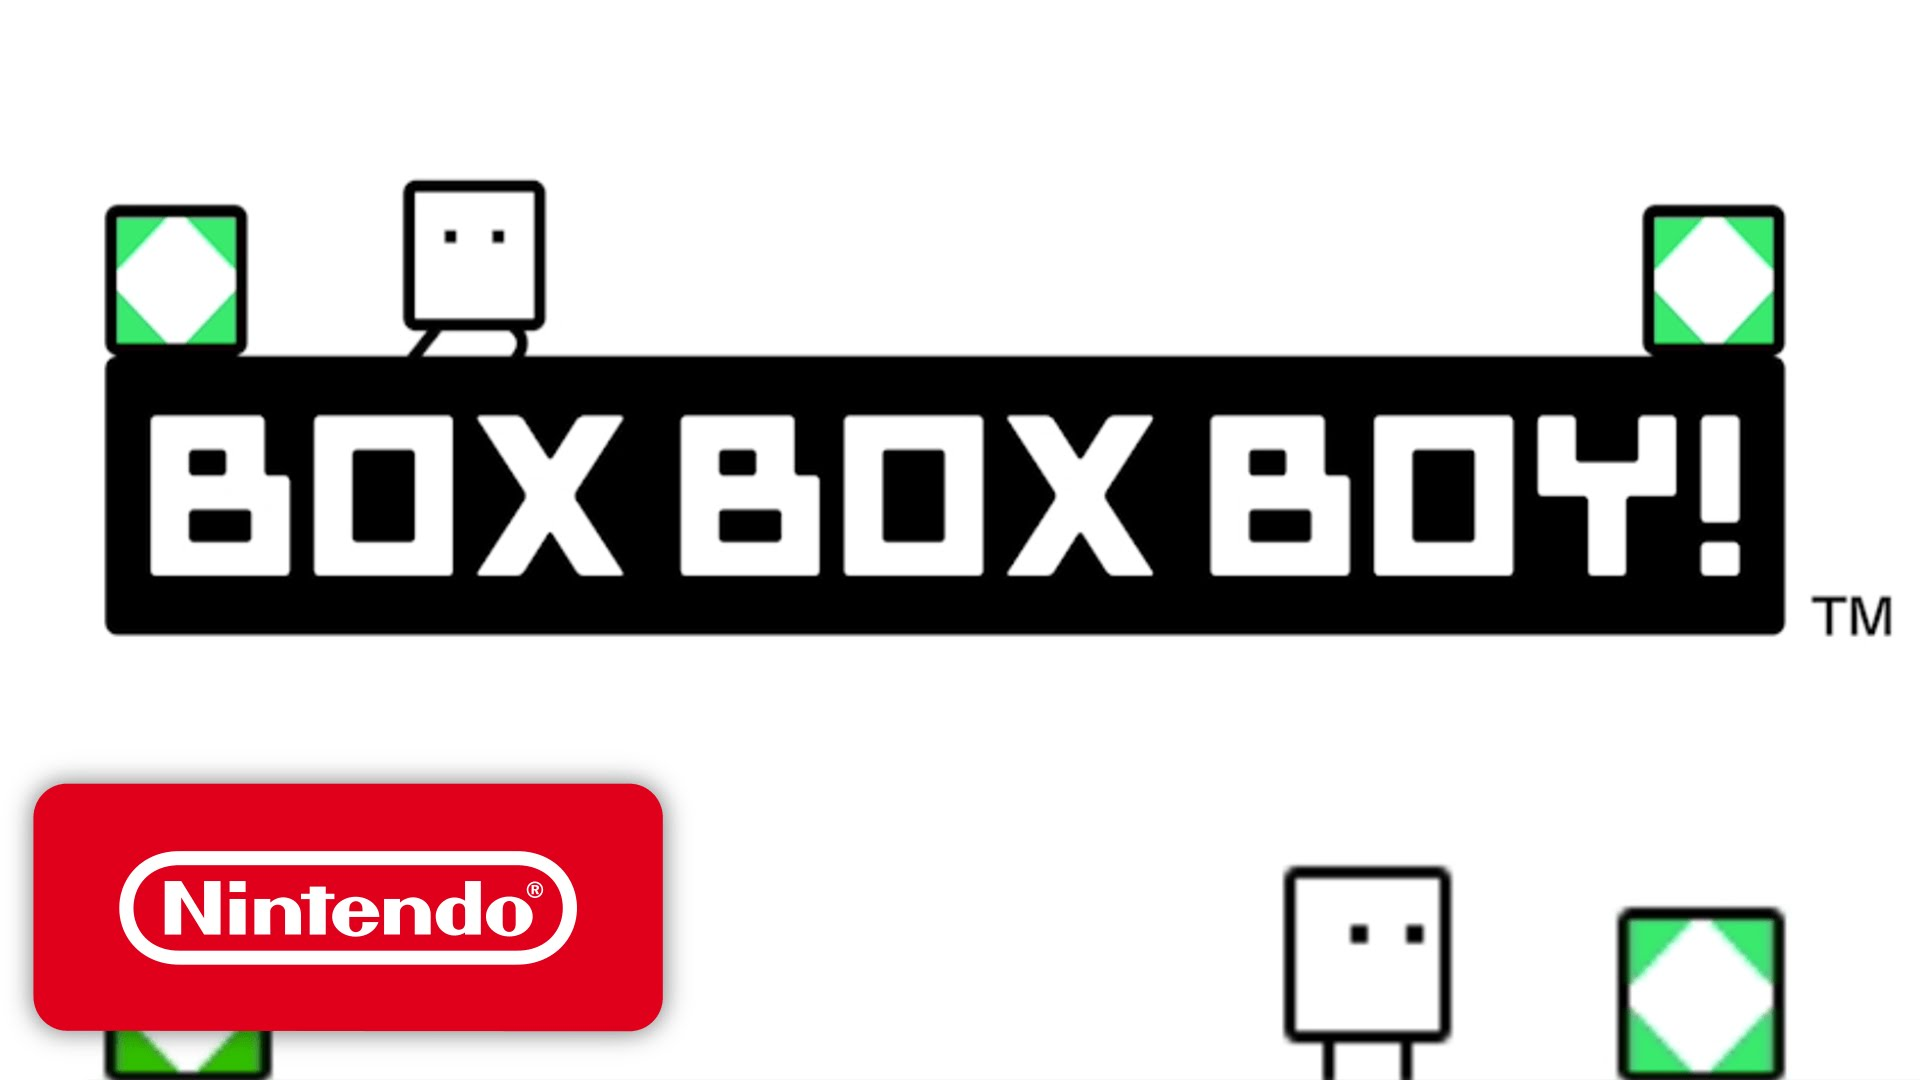 BOXBOXBOY! - Gameplay Trailer